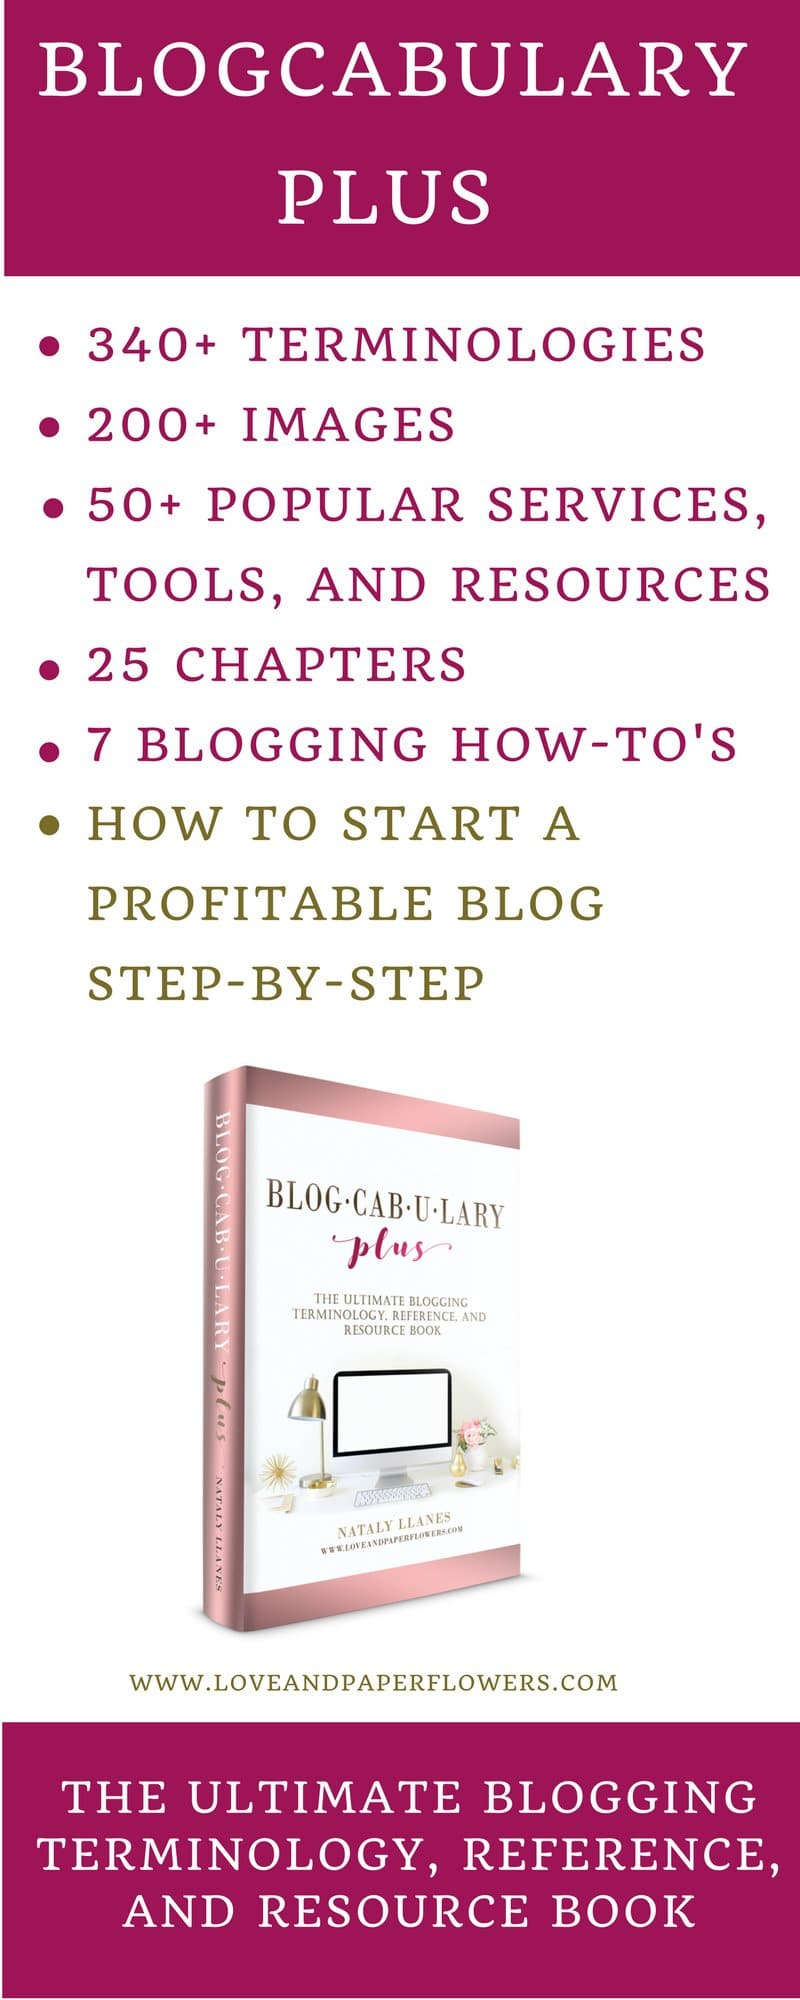 Interview with Nataly: Blogcabulary Plus – The Ultimate Blogging Book 3